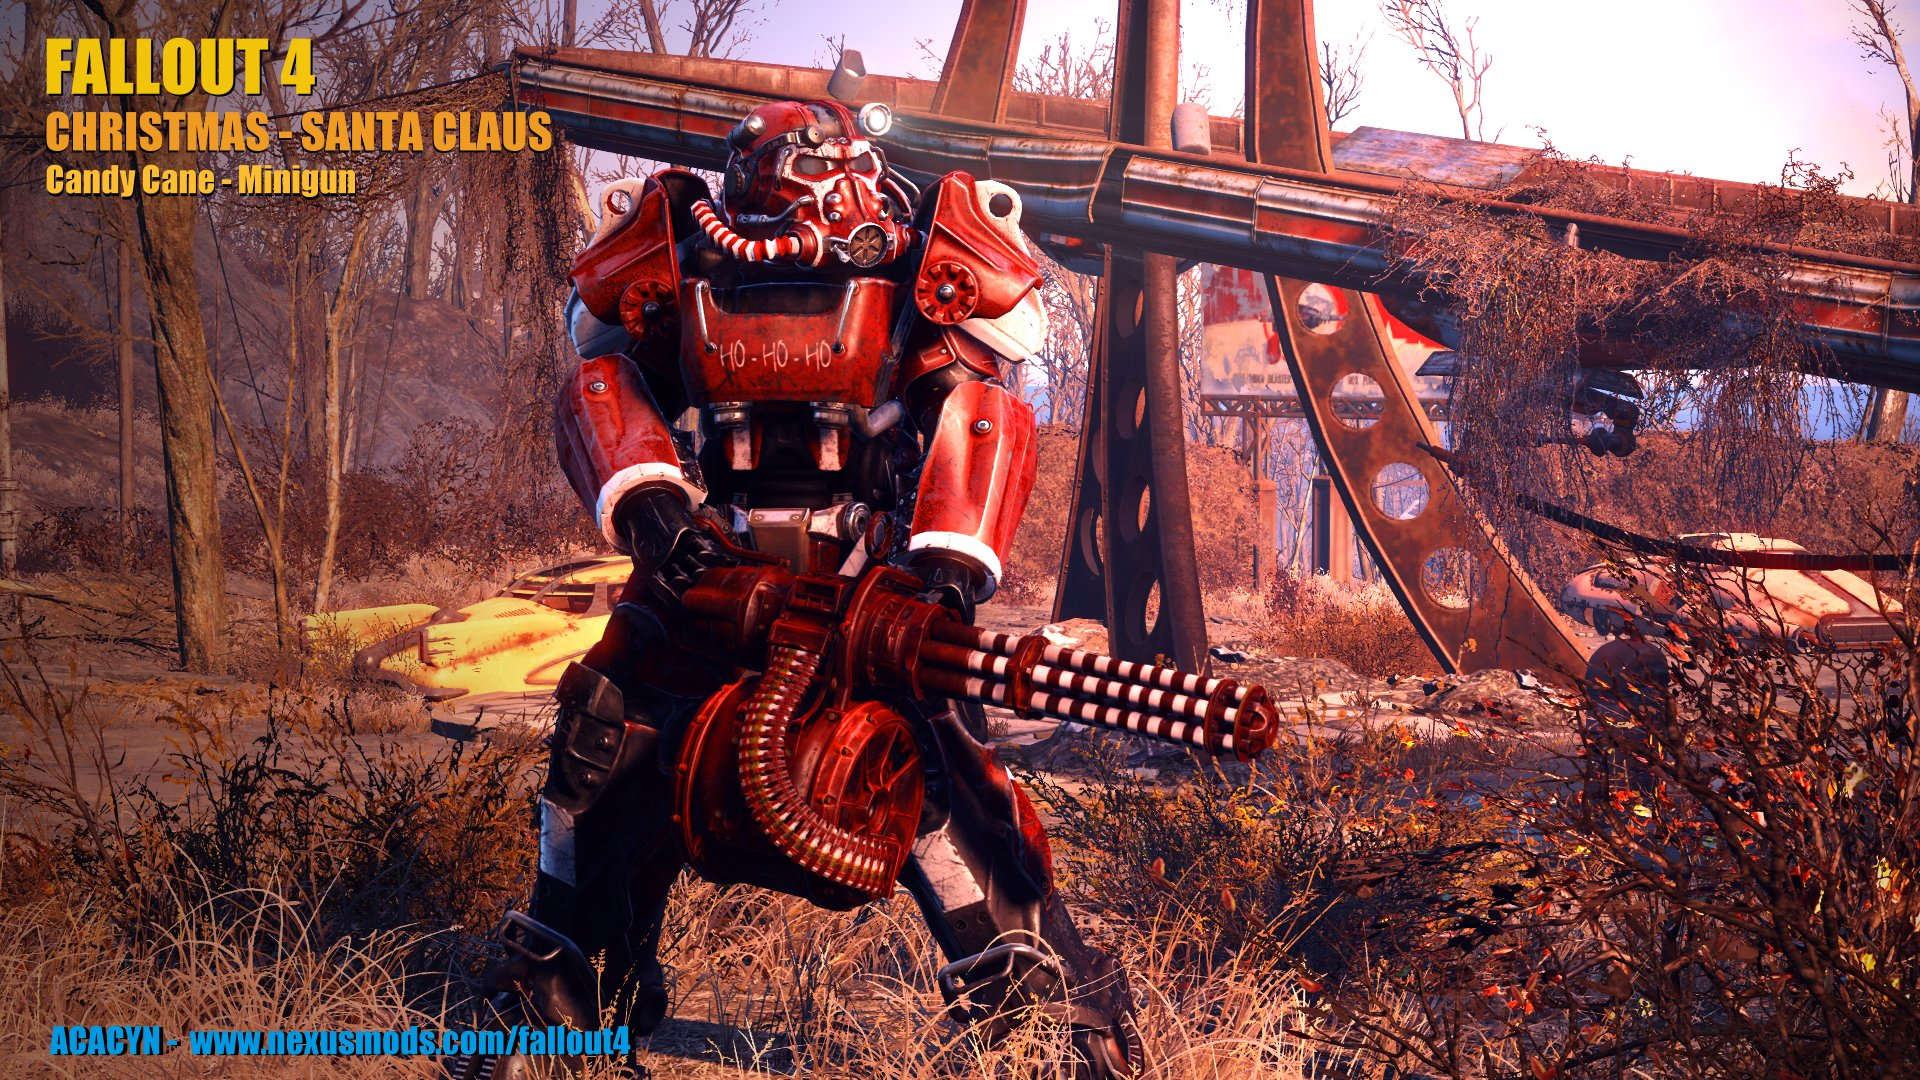 Christmas - Santa Claus Power Armor at Fallout 4 Nexus - Mods and ...